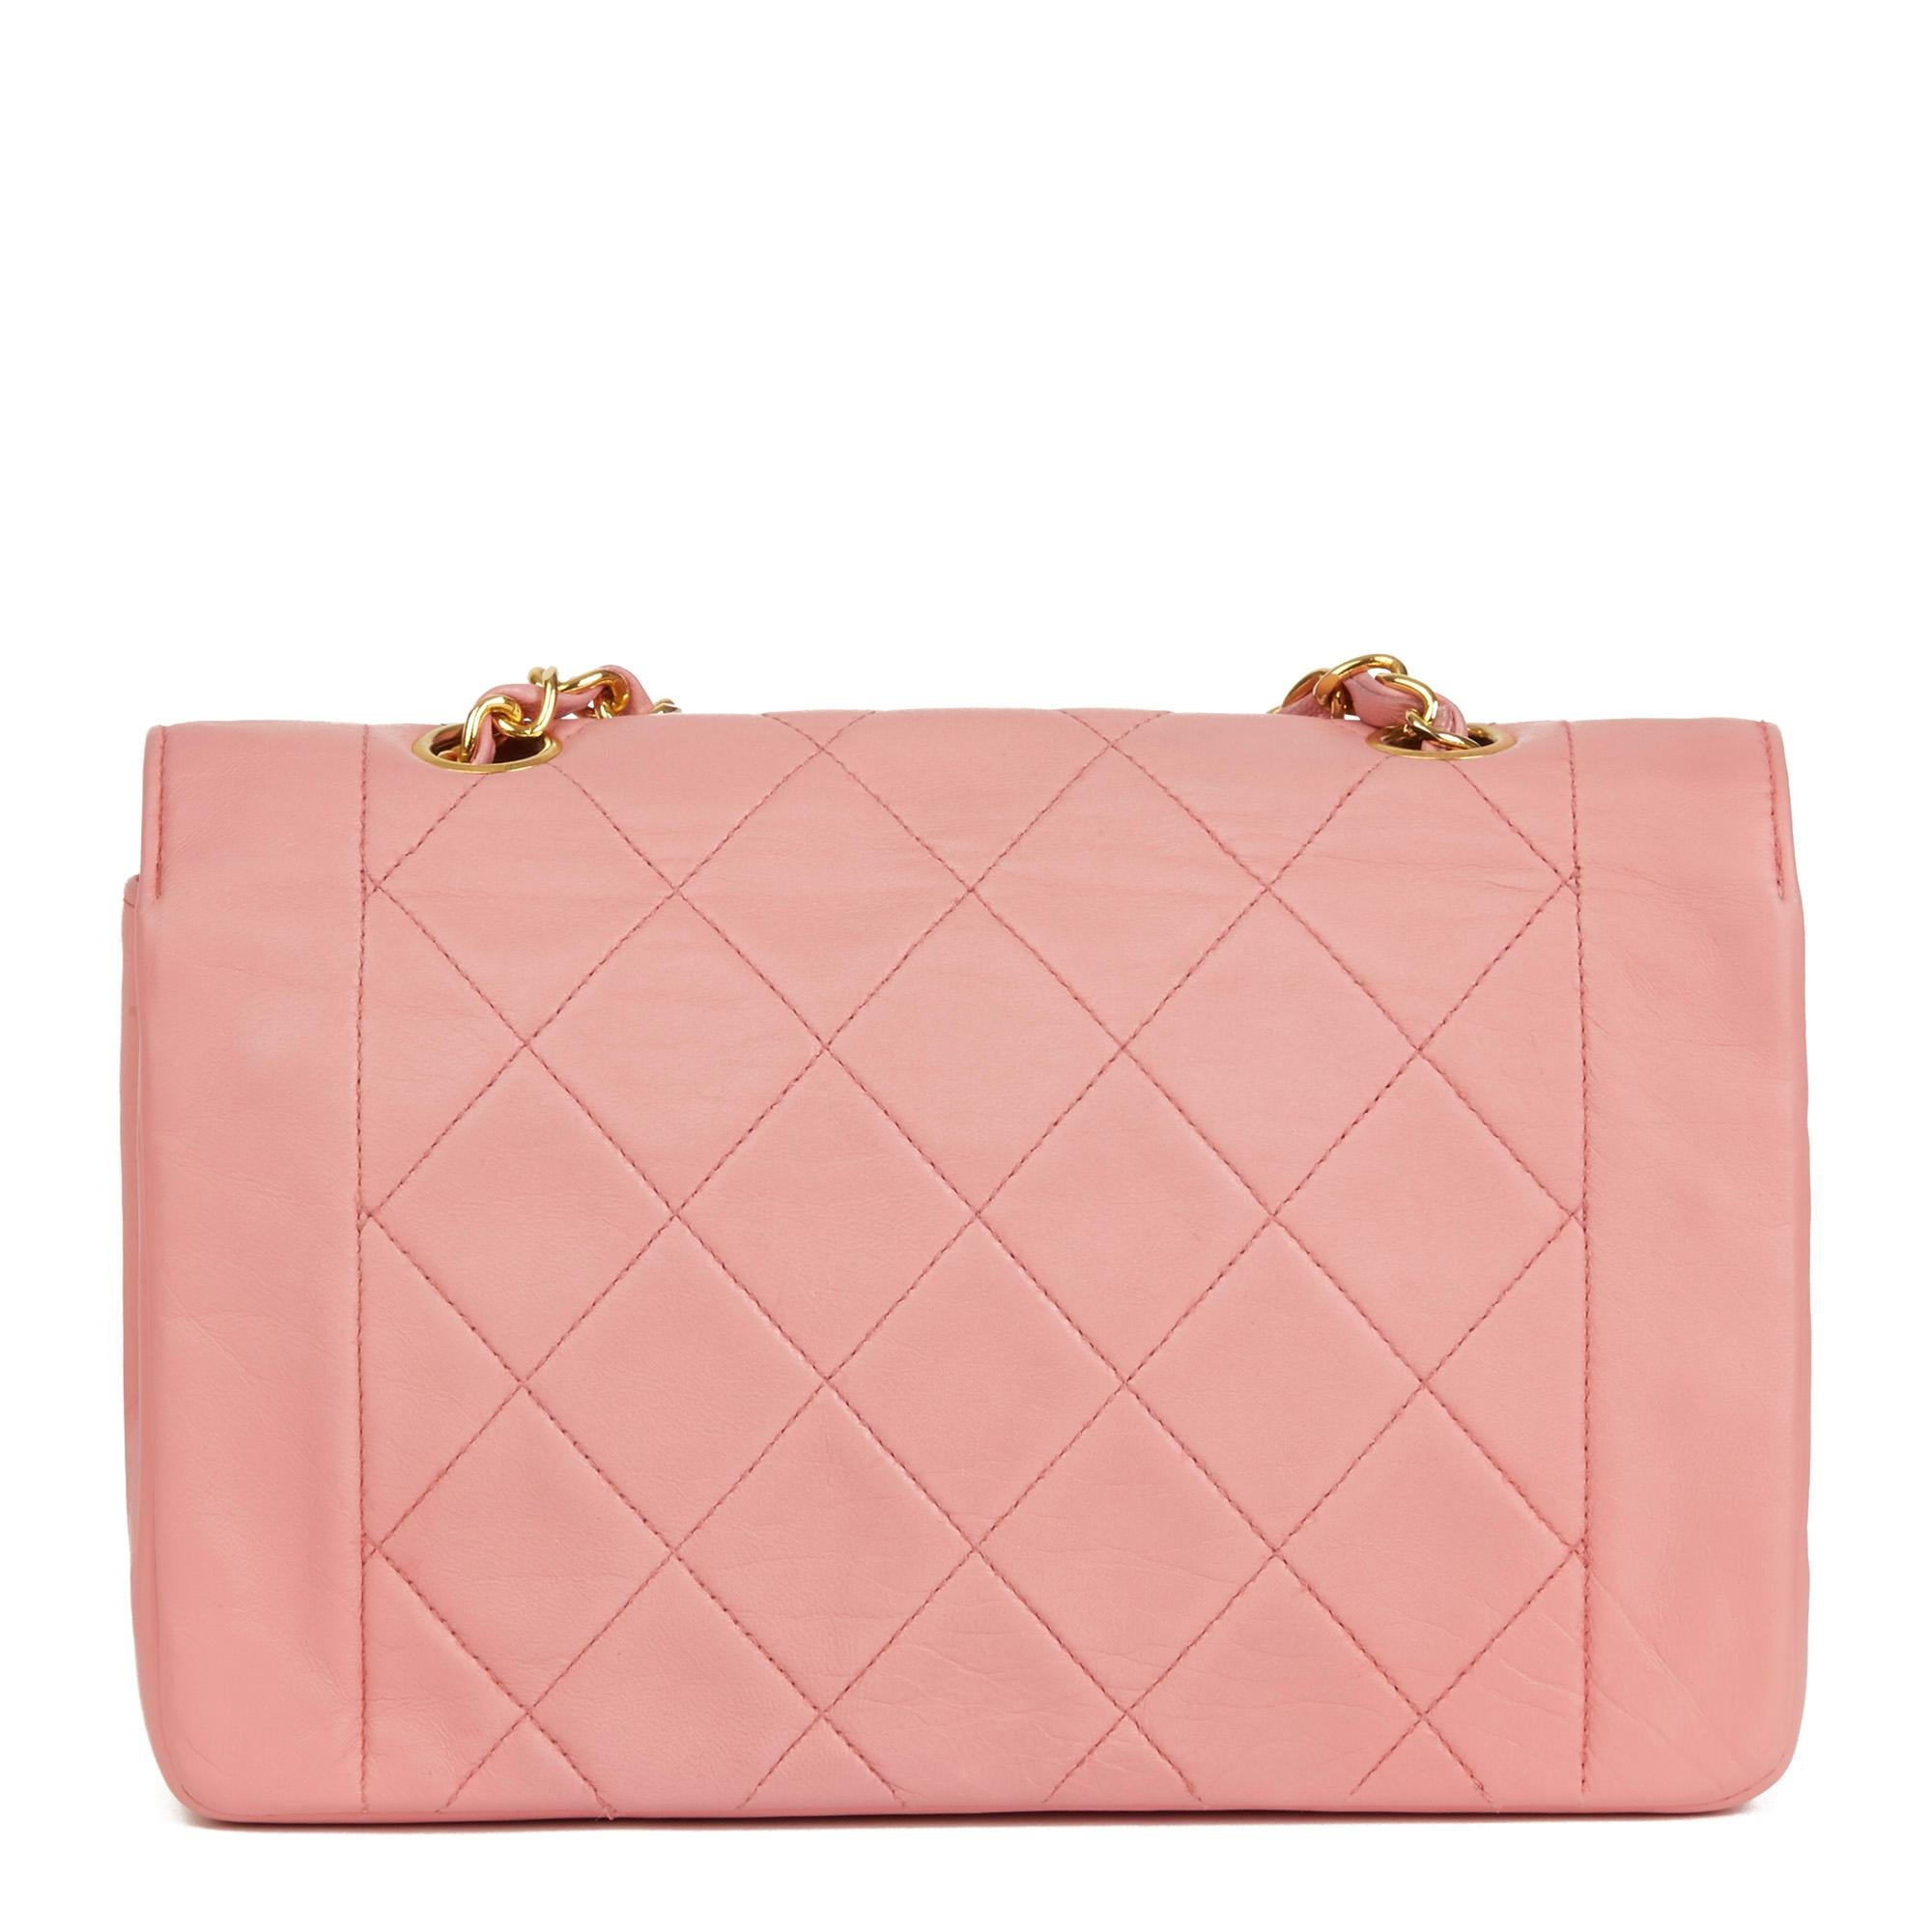 a9c149d6e02f 1989 Chanel Pink Quilted Lambskin Vintage Small Diana Classic Single Flap  Bag at 1stdibs